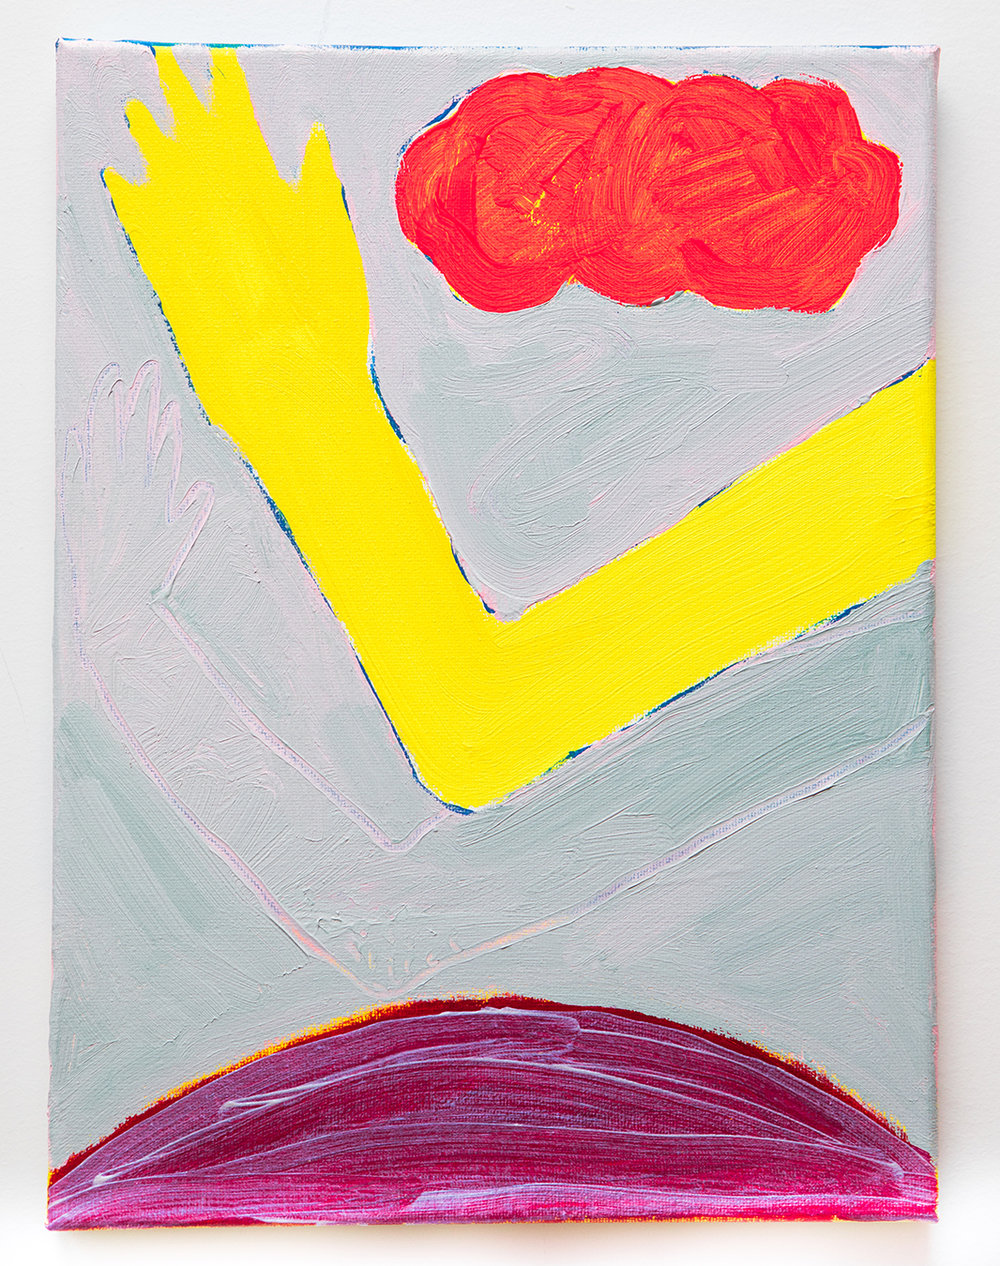 Yellow Arm, 2017